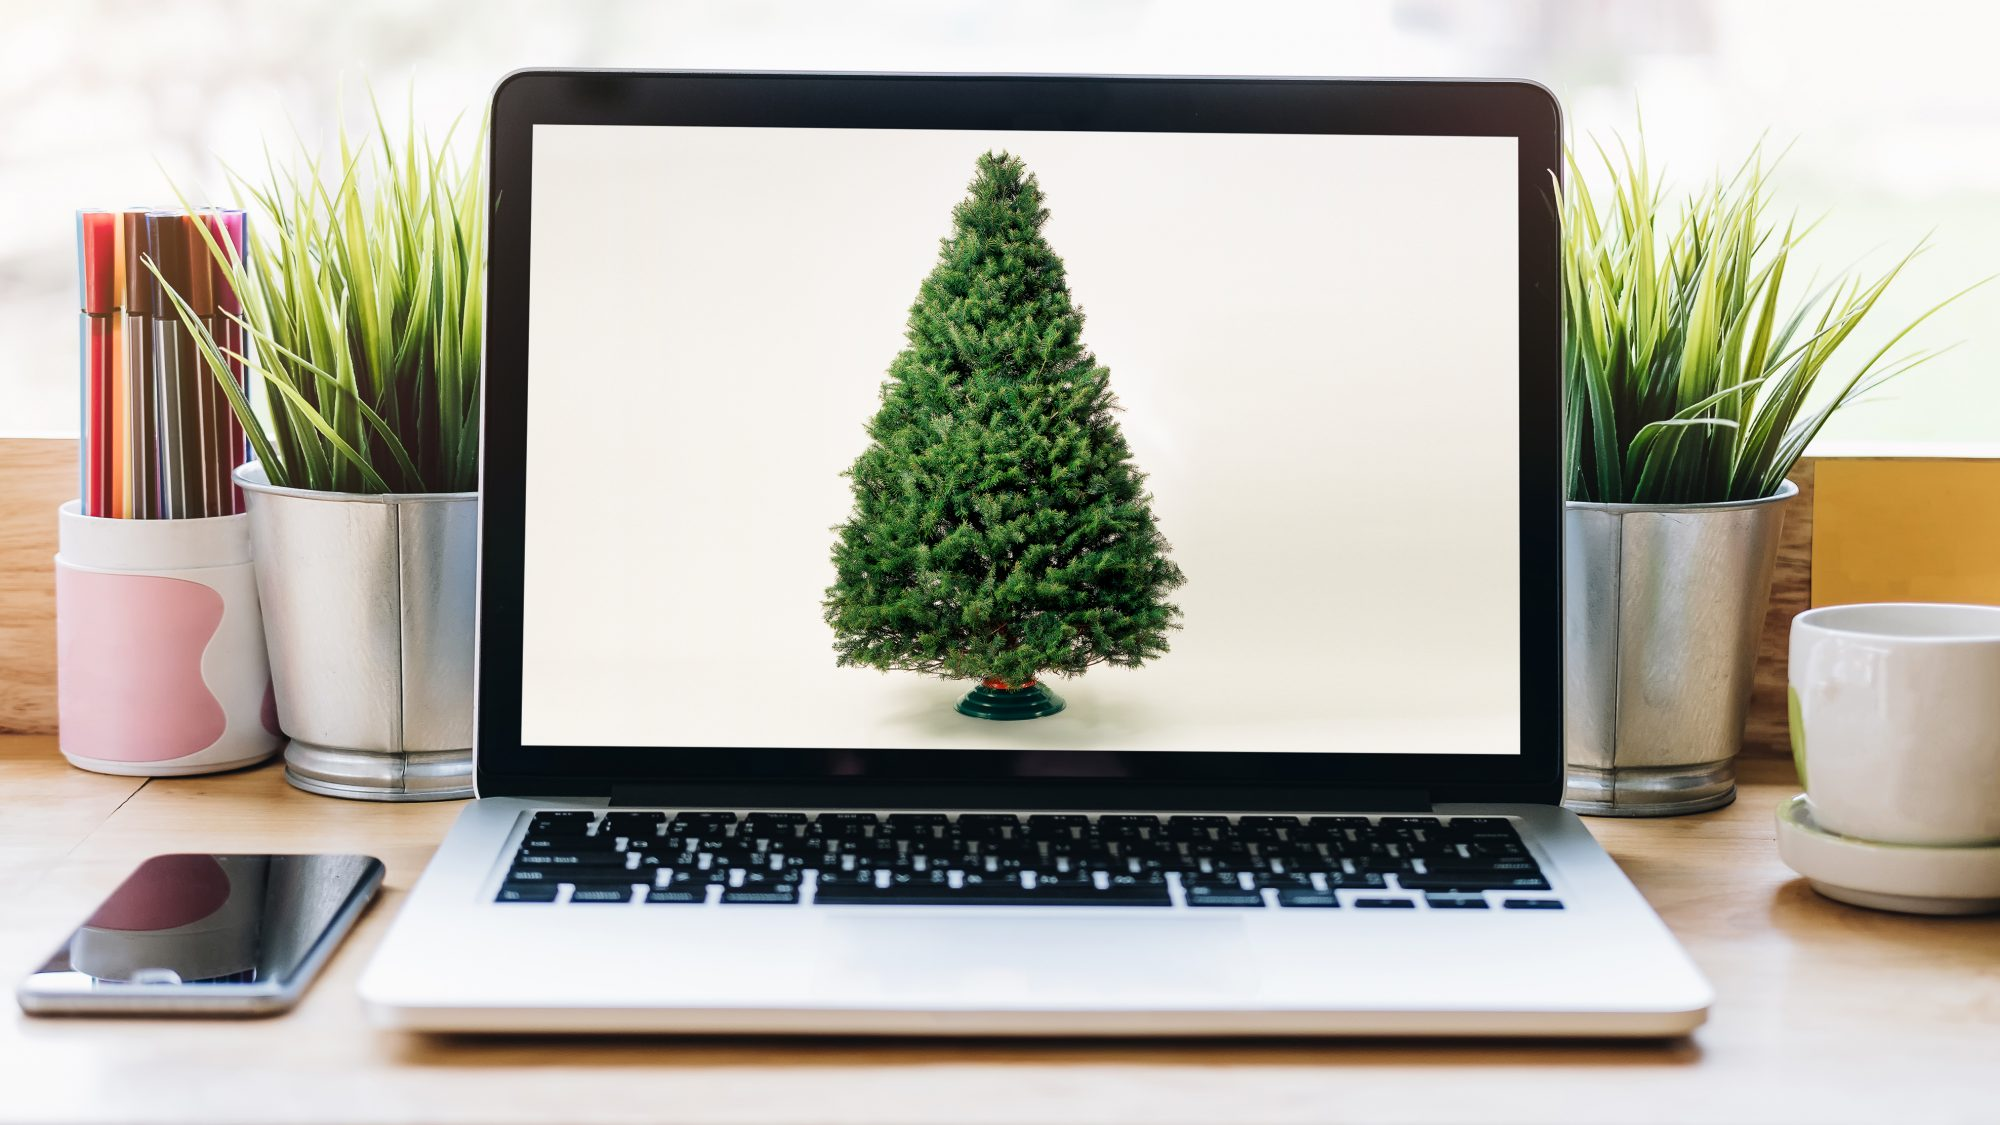 Where to buy real Christmas trees online: laptop